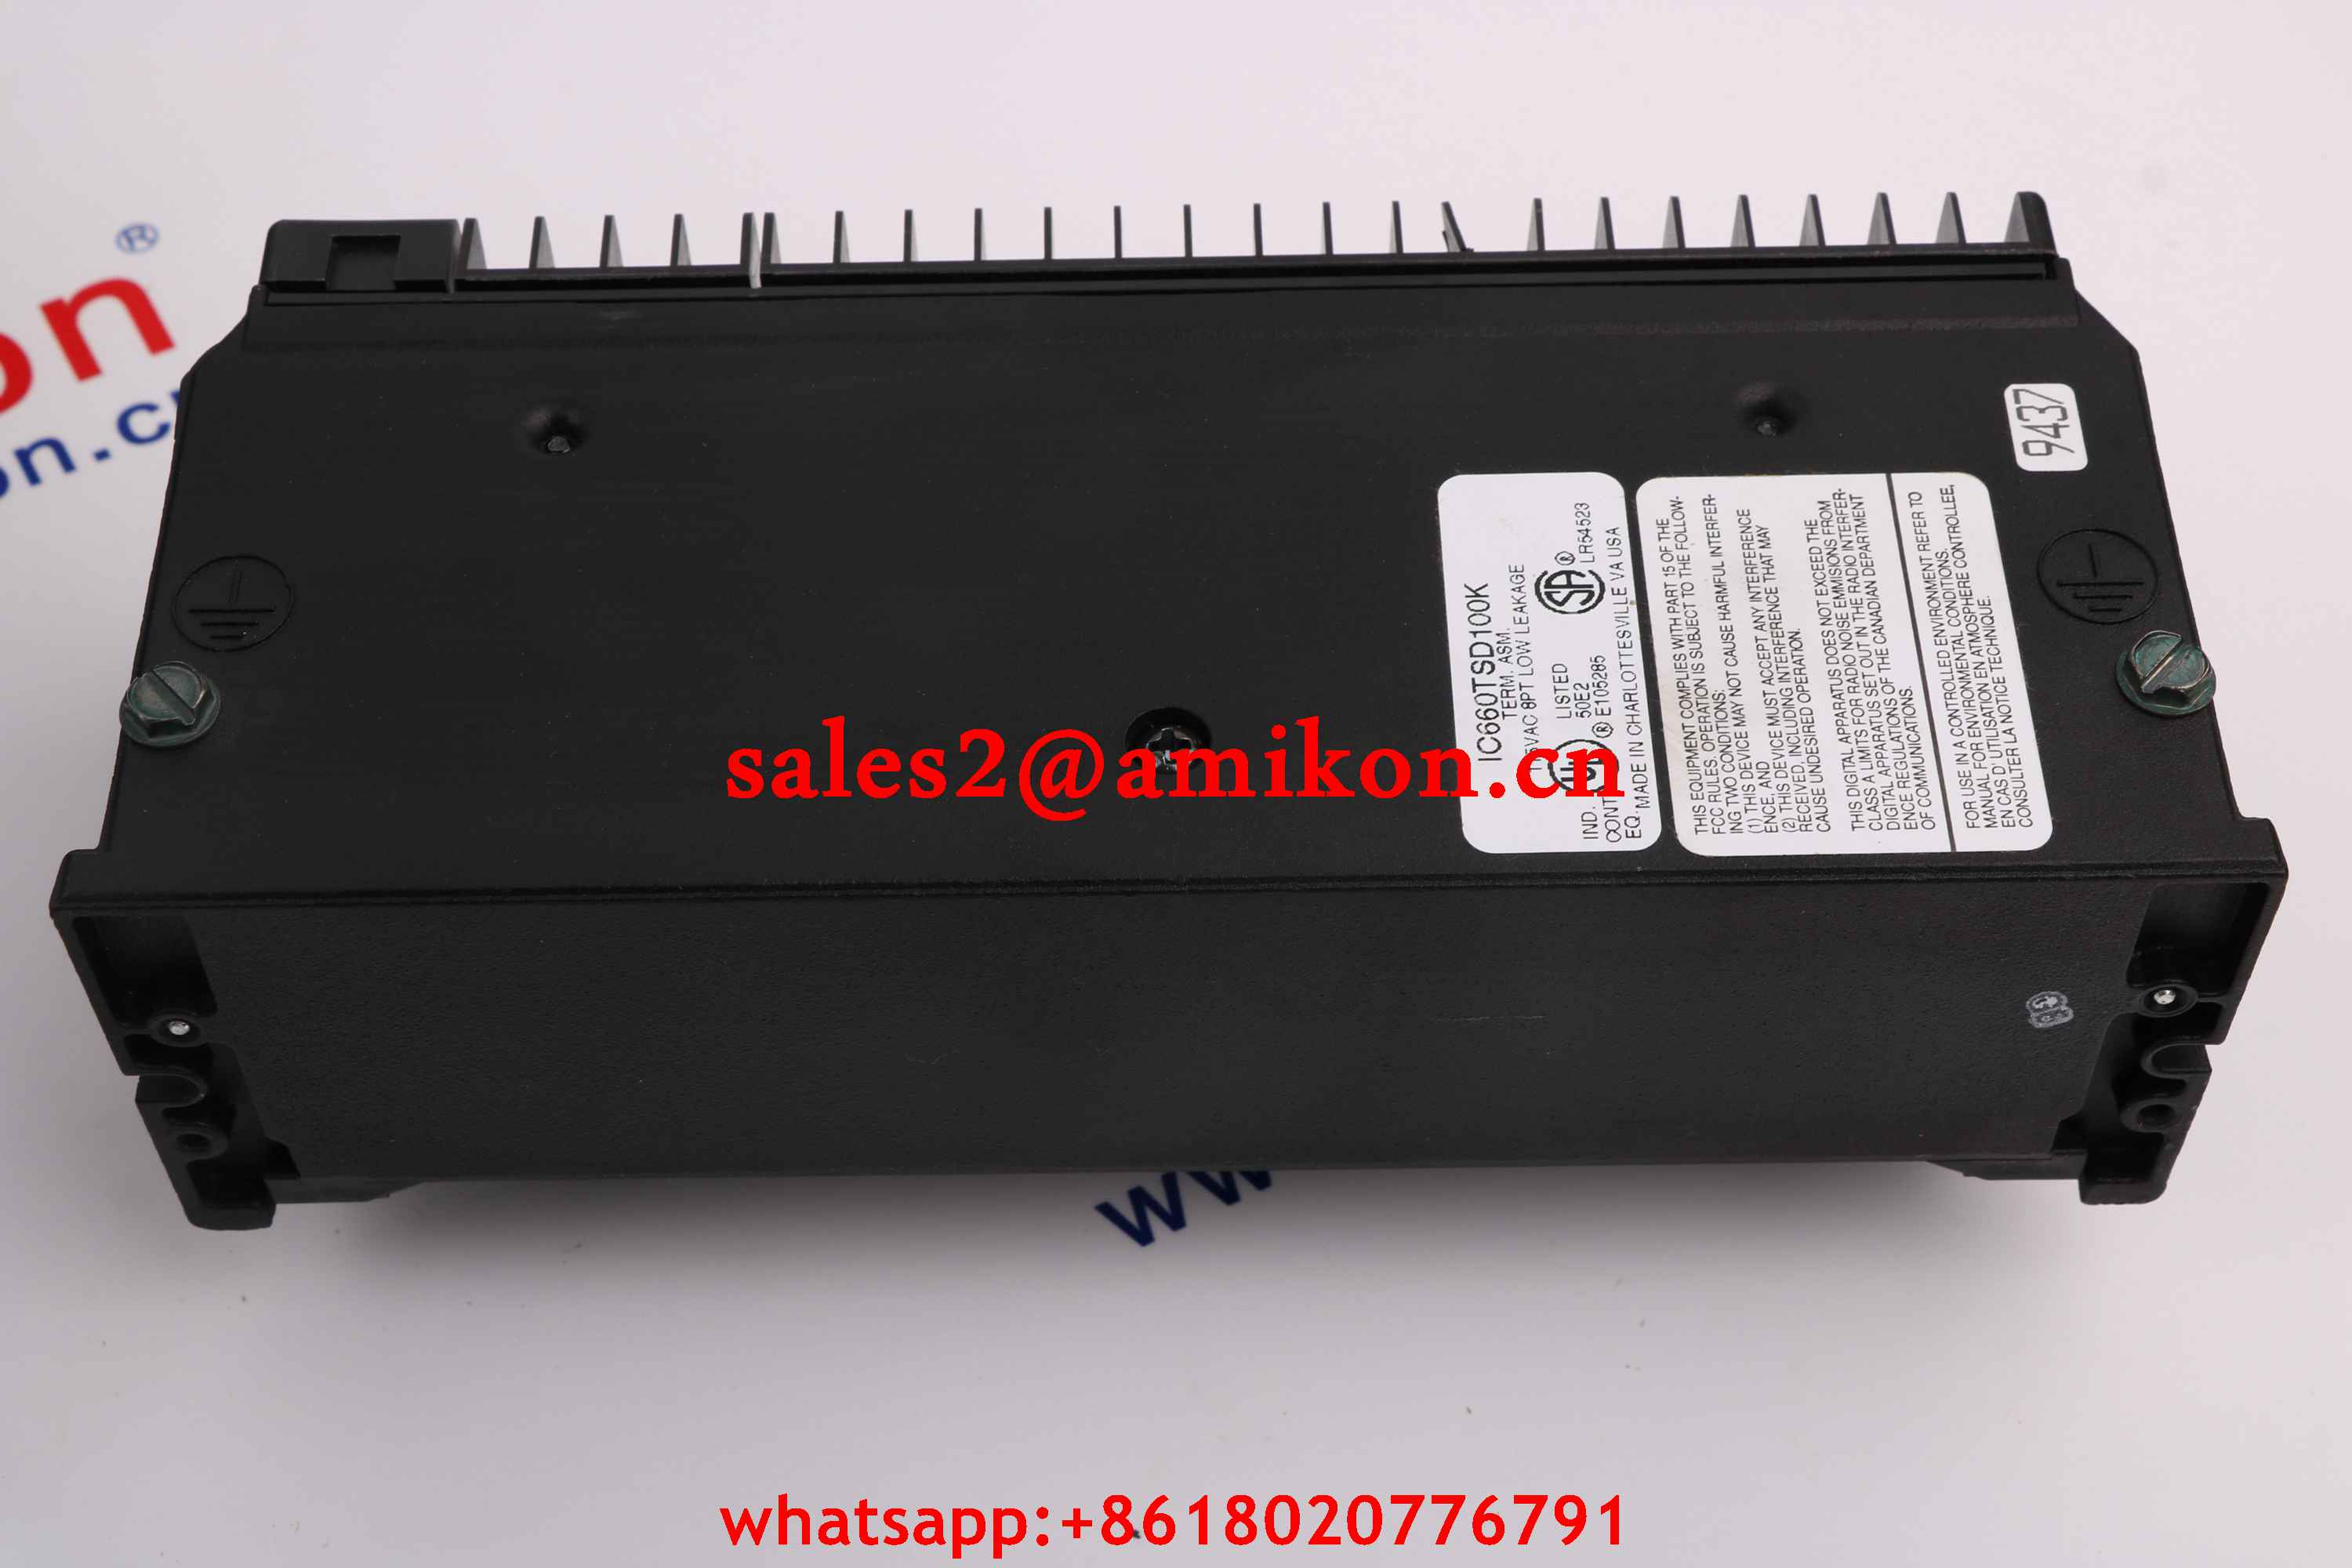 GE FANUC DS200GSIAG1BBB  new and Original USA 1 year warranty